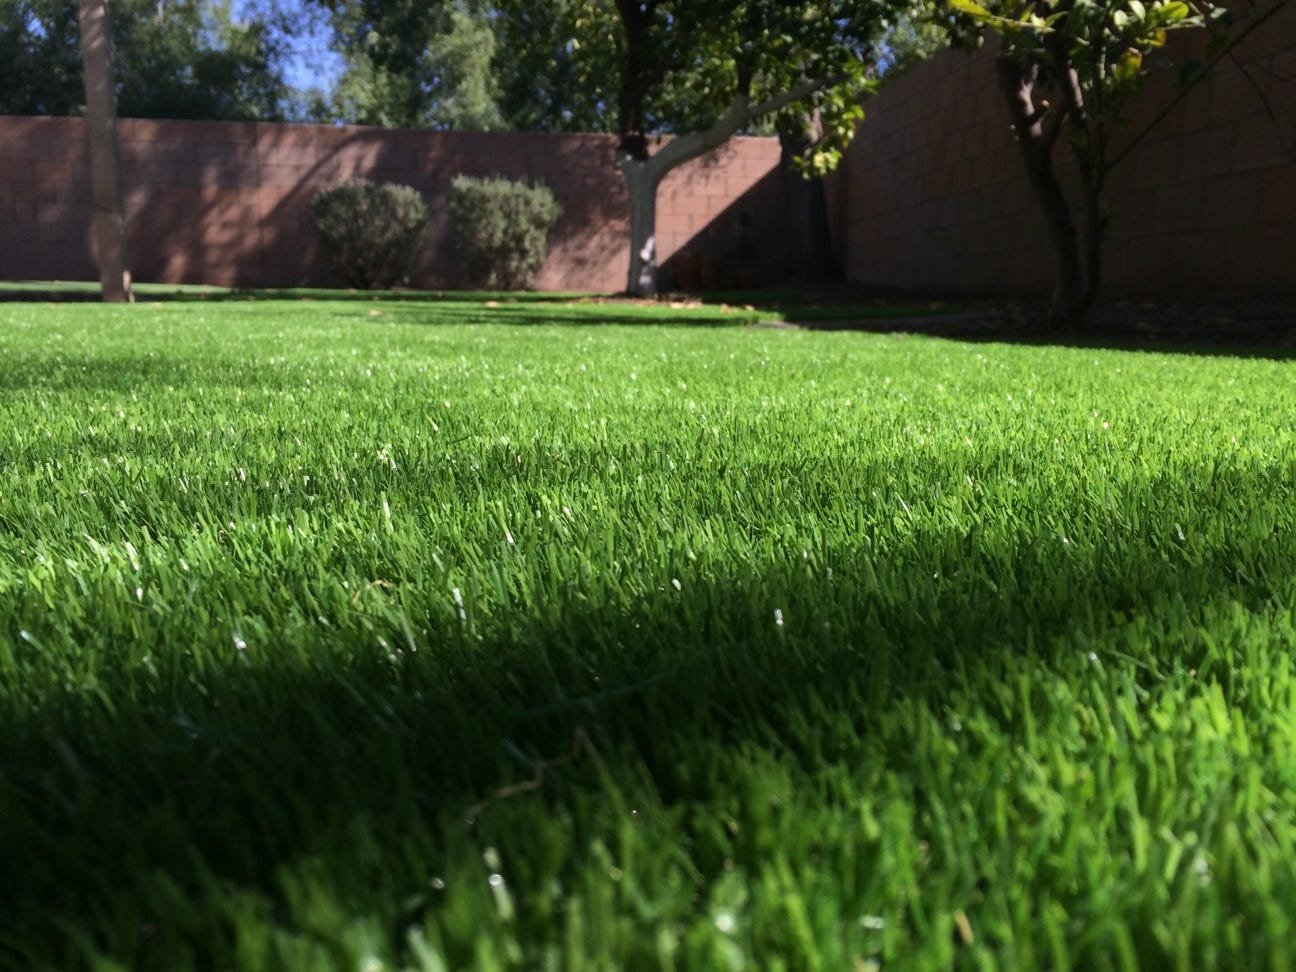 Artificial turf backyard California Small Shouldnt Artificial Grass Should Be More Of Thing In Arizona Installitdirect Artificial Grass Should Be More Of Thing In Arizona Why Isnt It